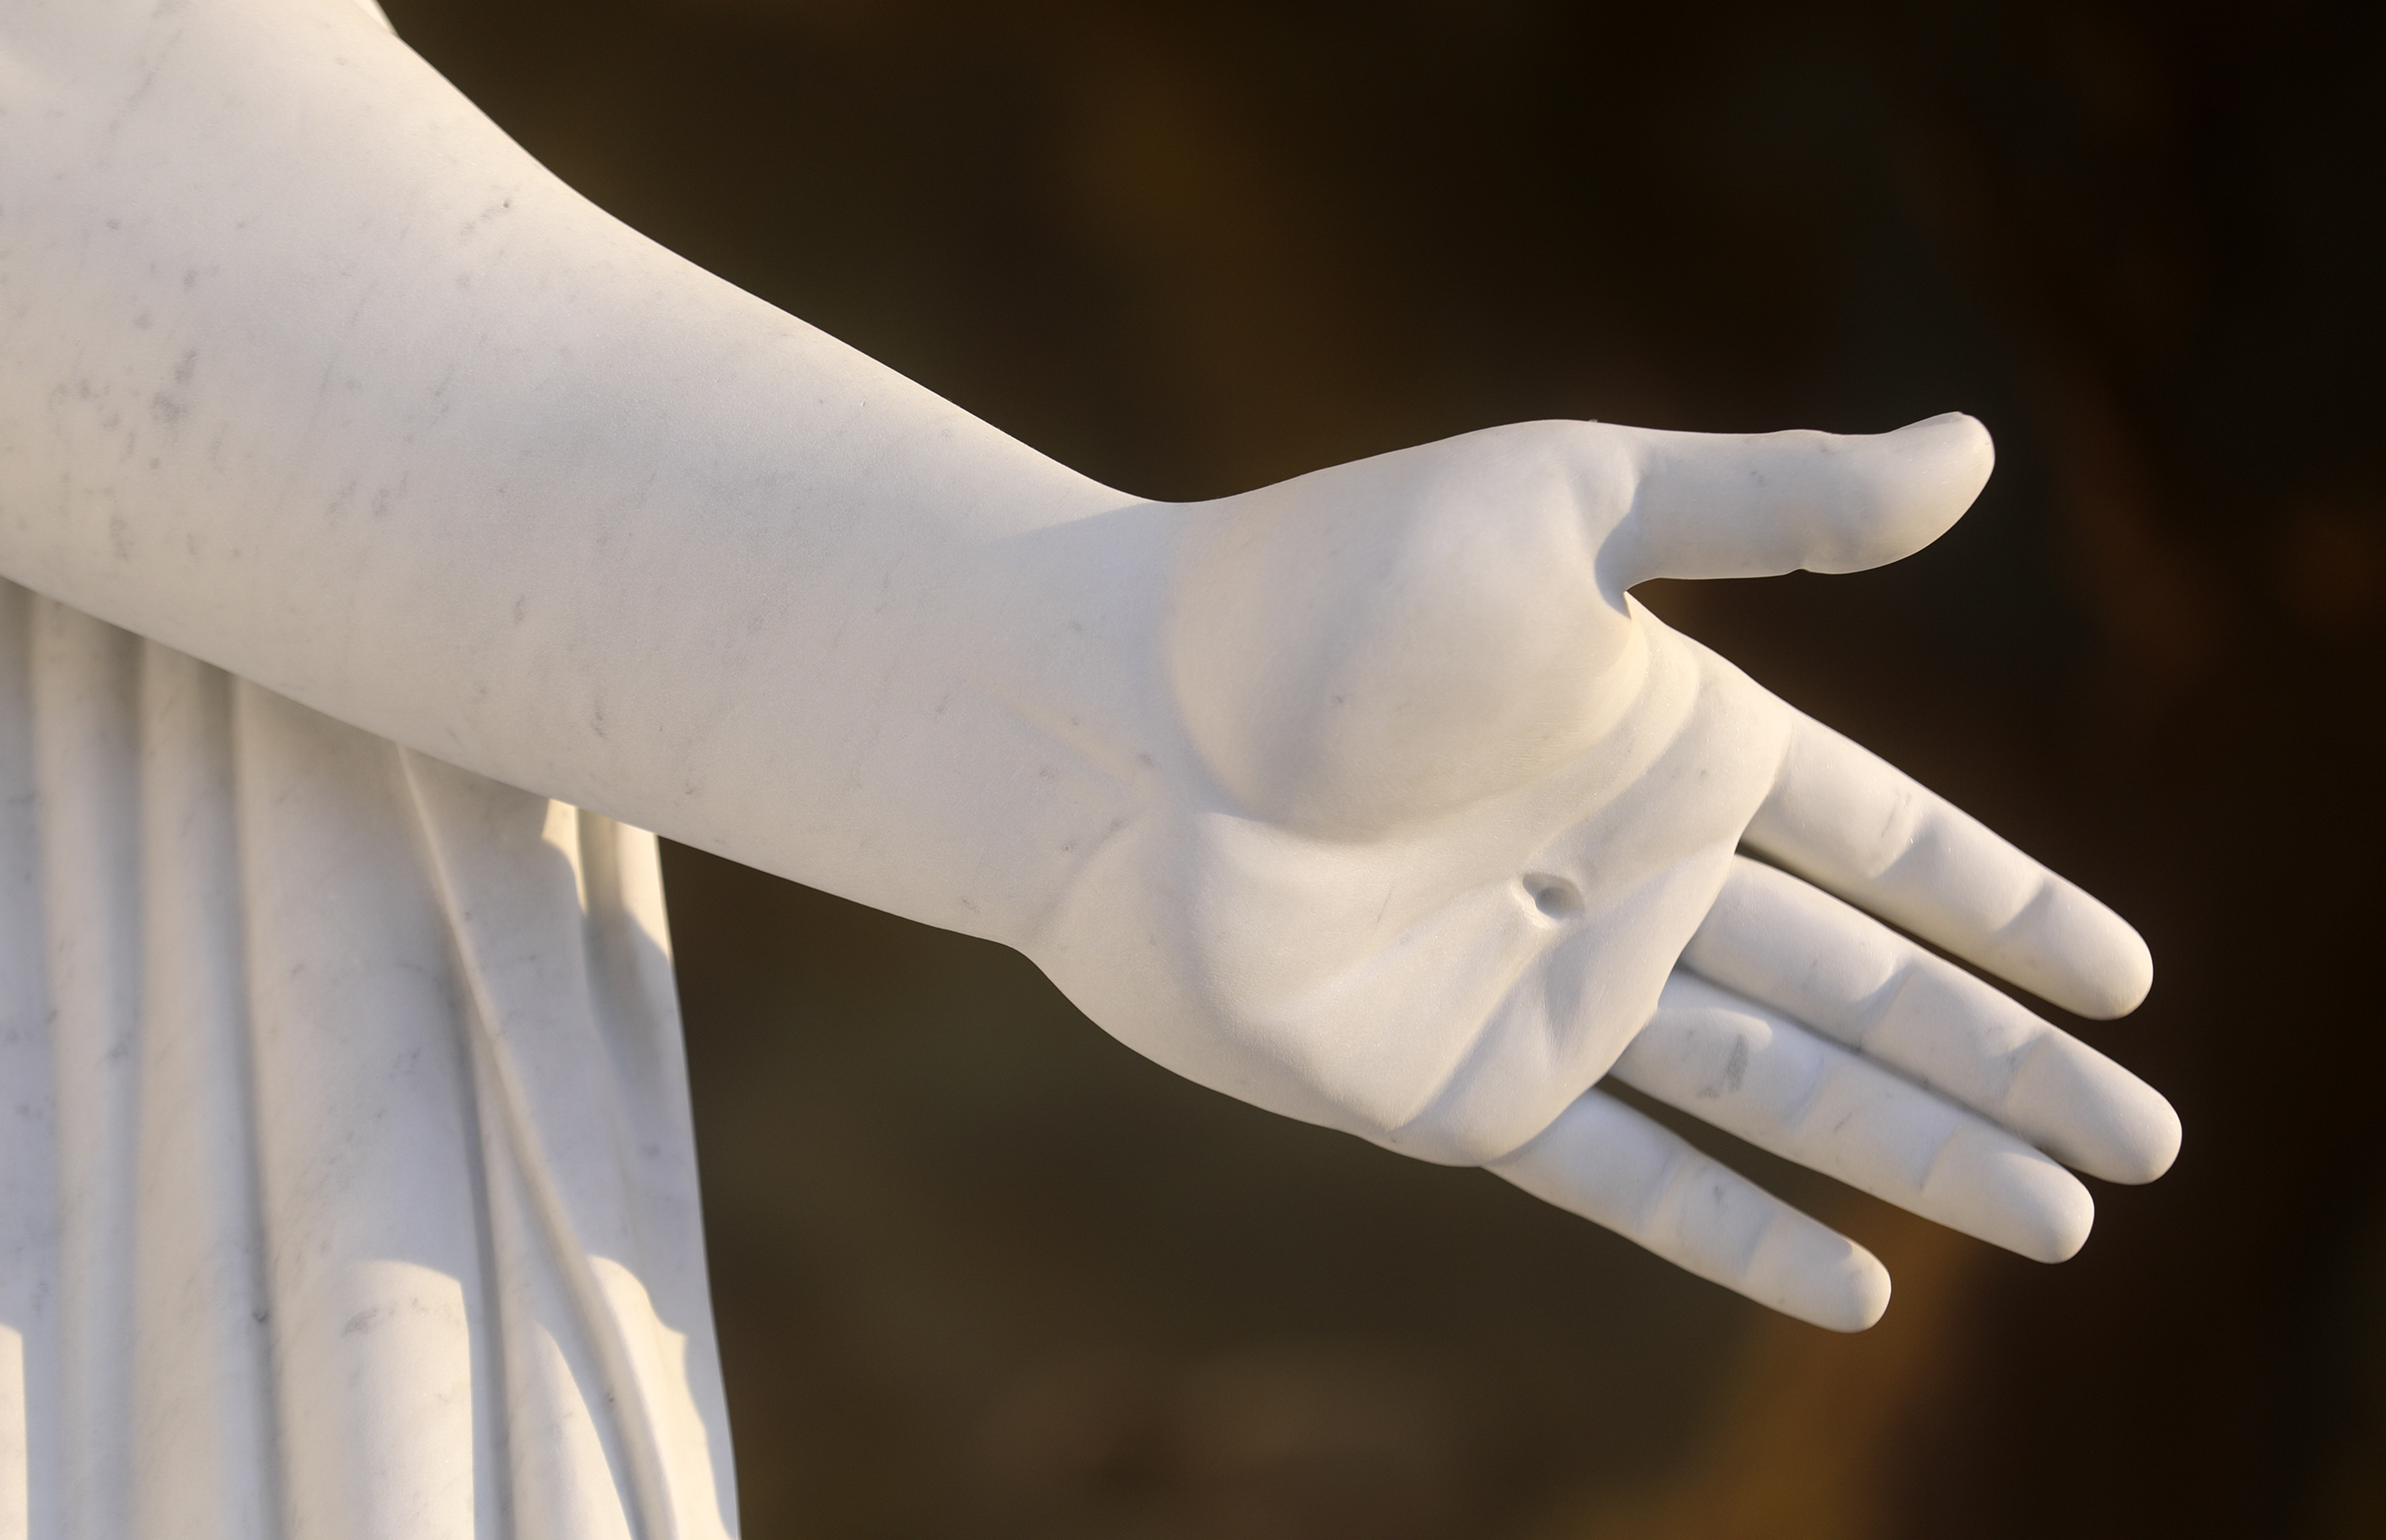 The pierced hand of a replica of Bertel Thorvaldsen's Christus statue in the visitors' center for the Rome Temple in Rome, Italy, on Friday, Nov. 16, 2018.